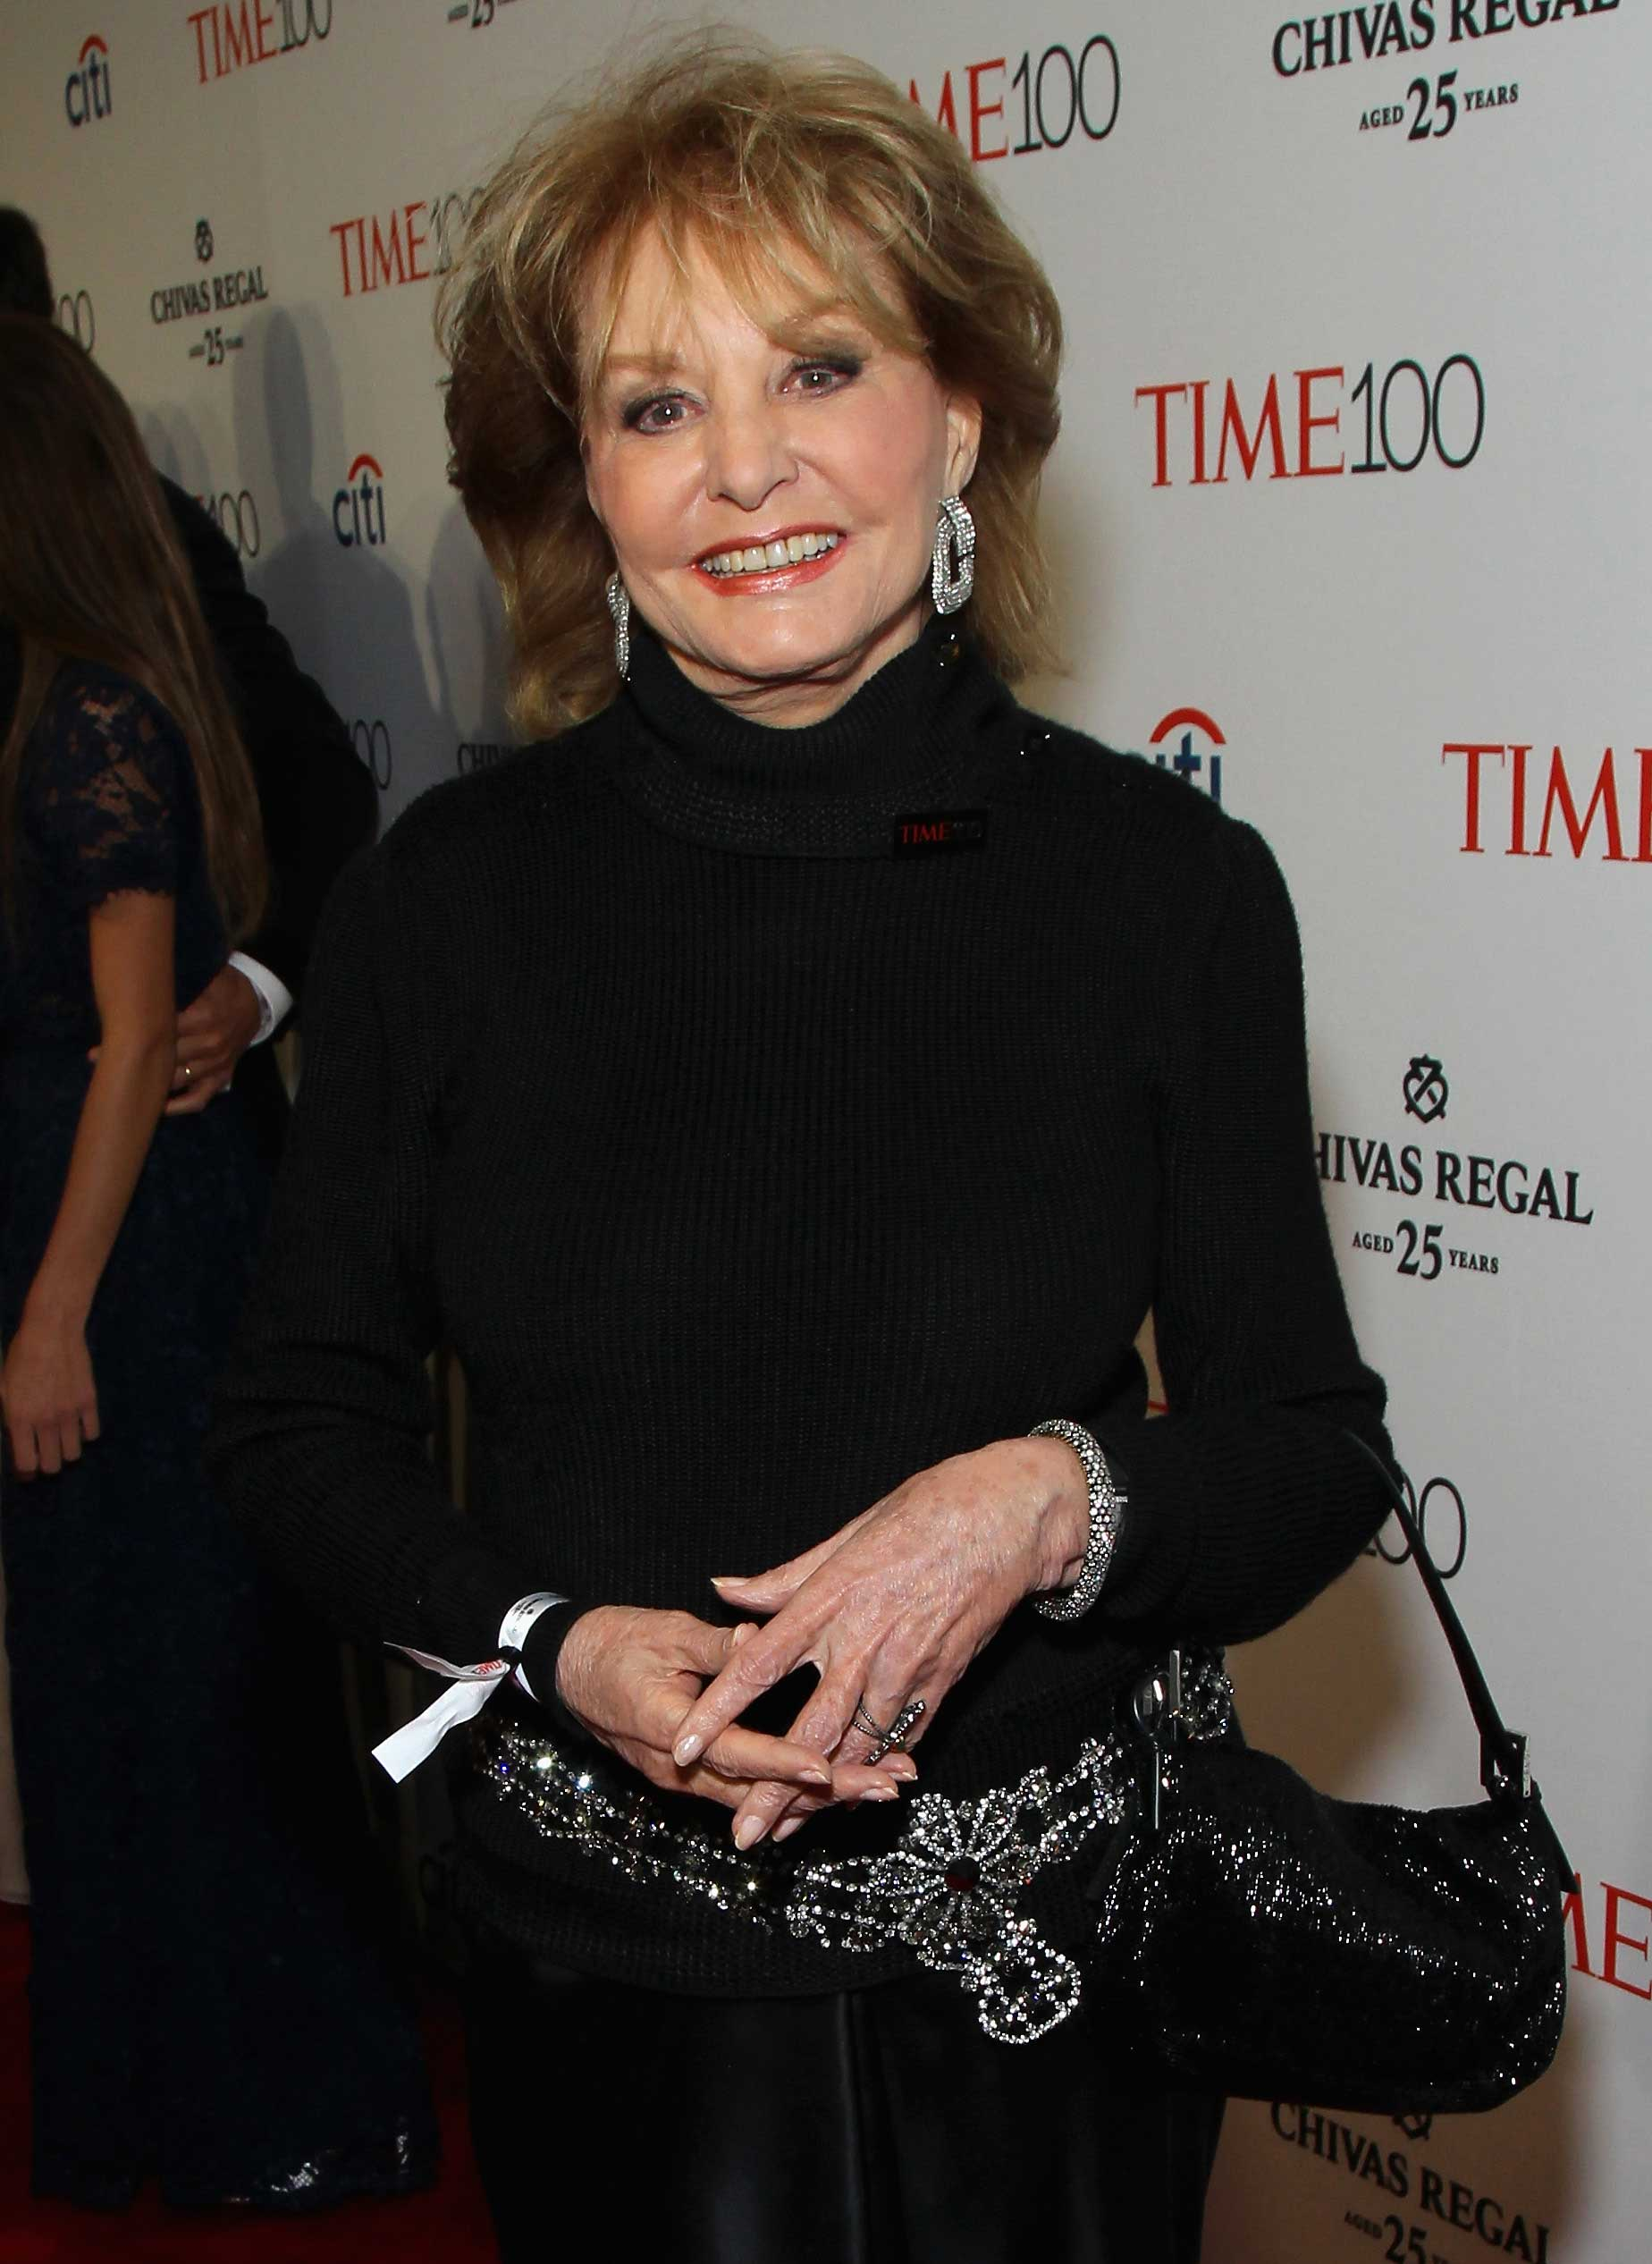 Barbara Walters attends the TIME 100 Gala at Jazz at Lincoln Center in New York City on Apr. 21, 2015.